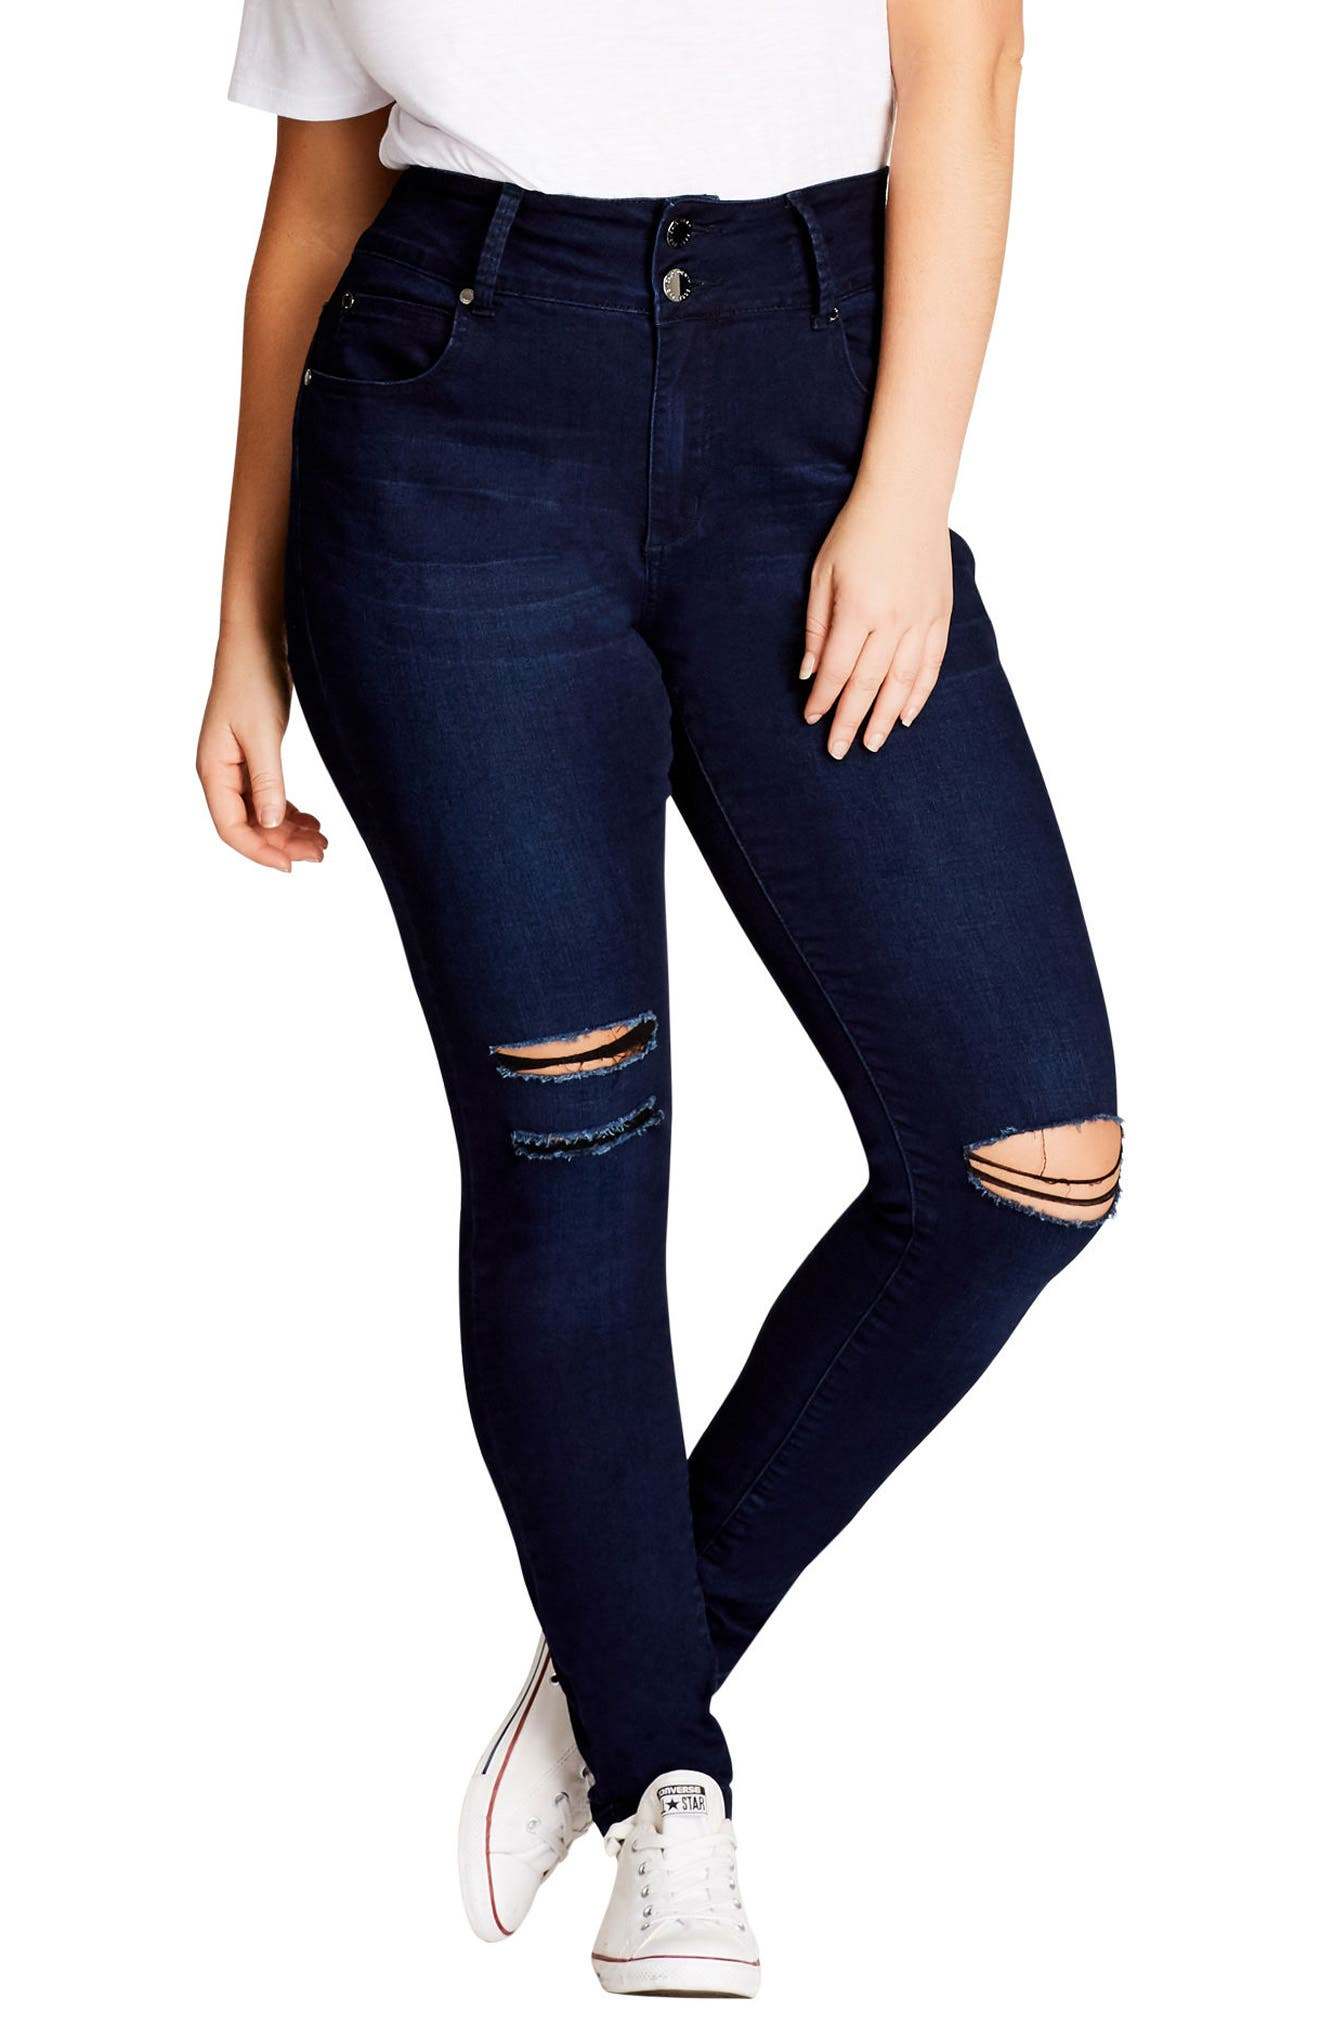 Main Image - City Chic Harley Ripped High Rise Skinny Jeans (Plus Size)